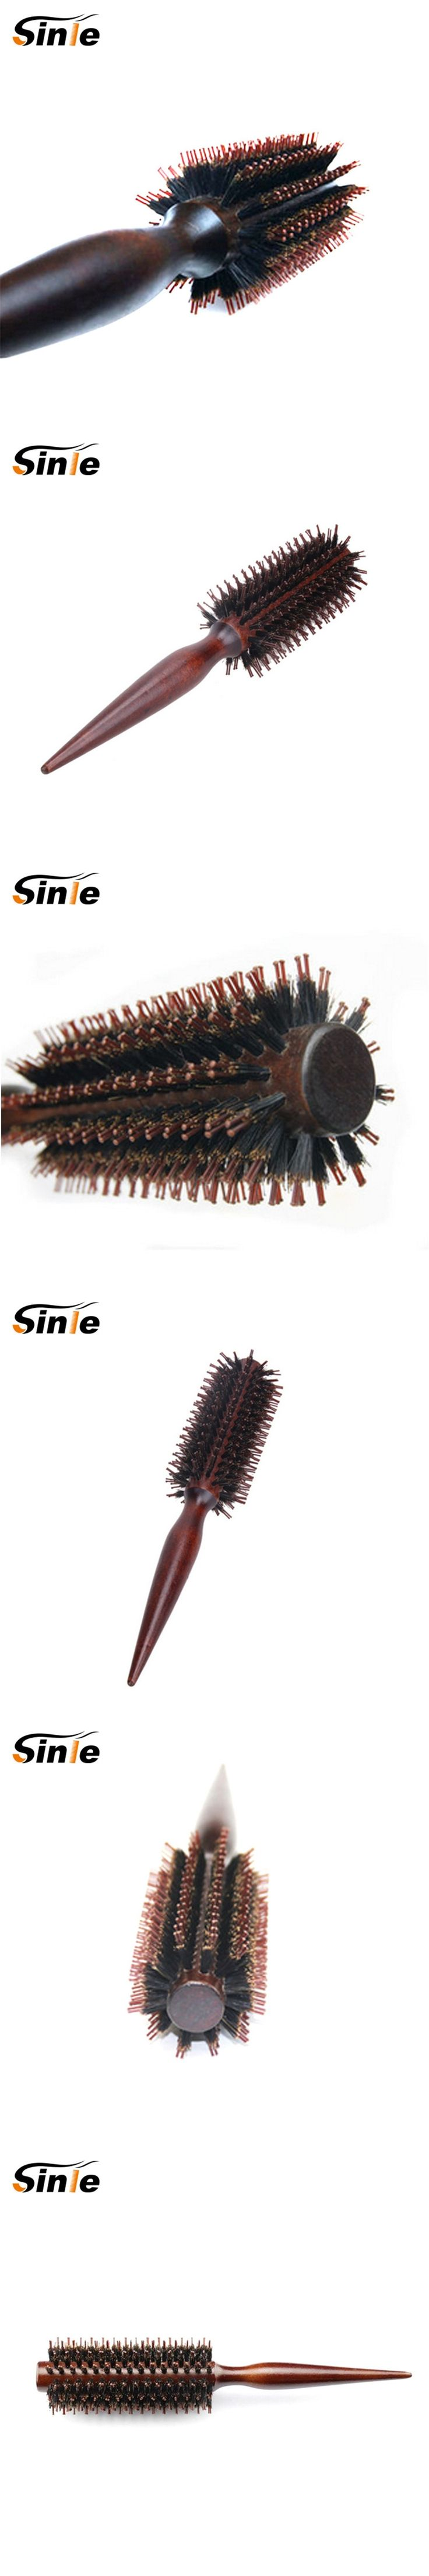 Roll Round Comb Brush Hair Care Tool Wood Handle Natural Bristle Curly Hair Brush Fluffy Comb Hairdressing Barber Tool